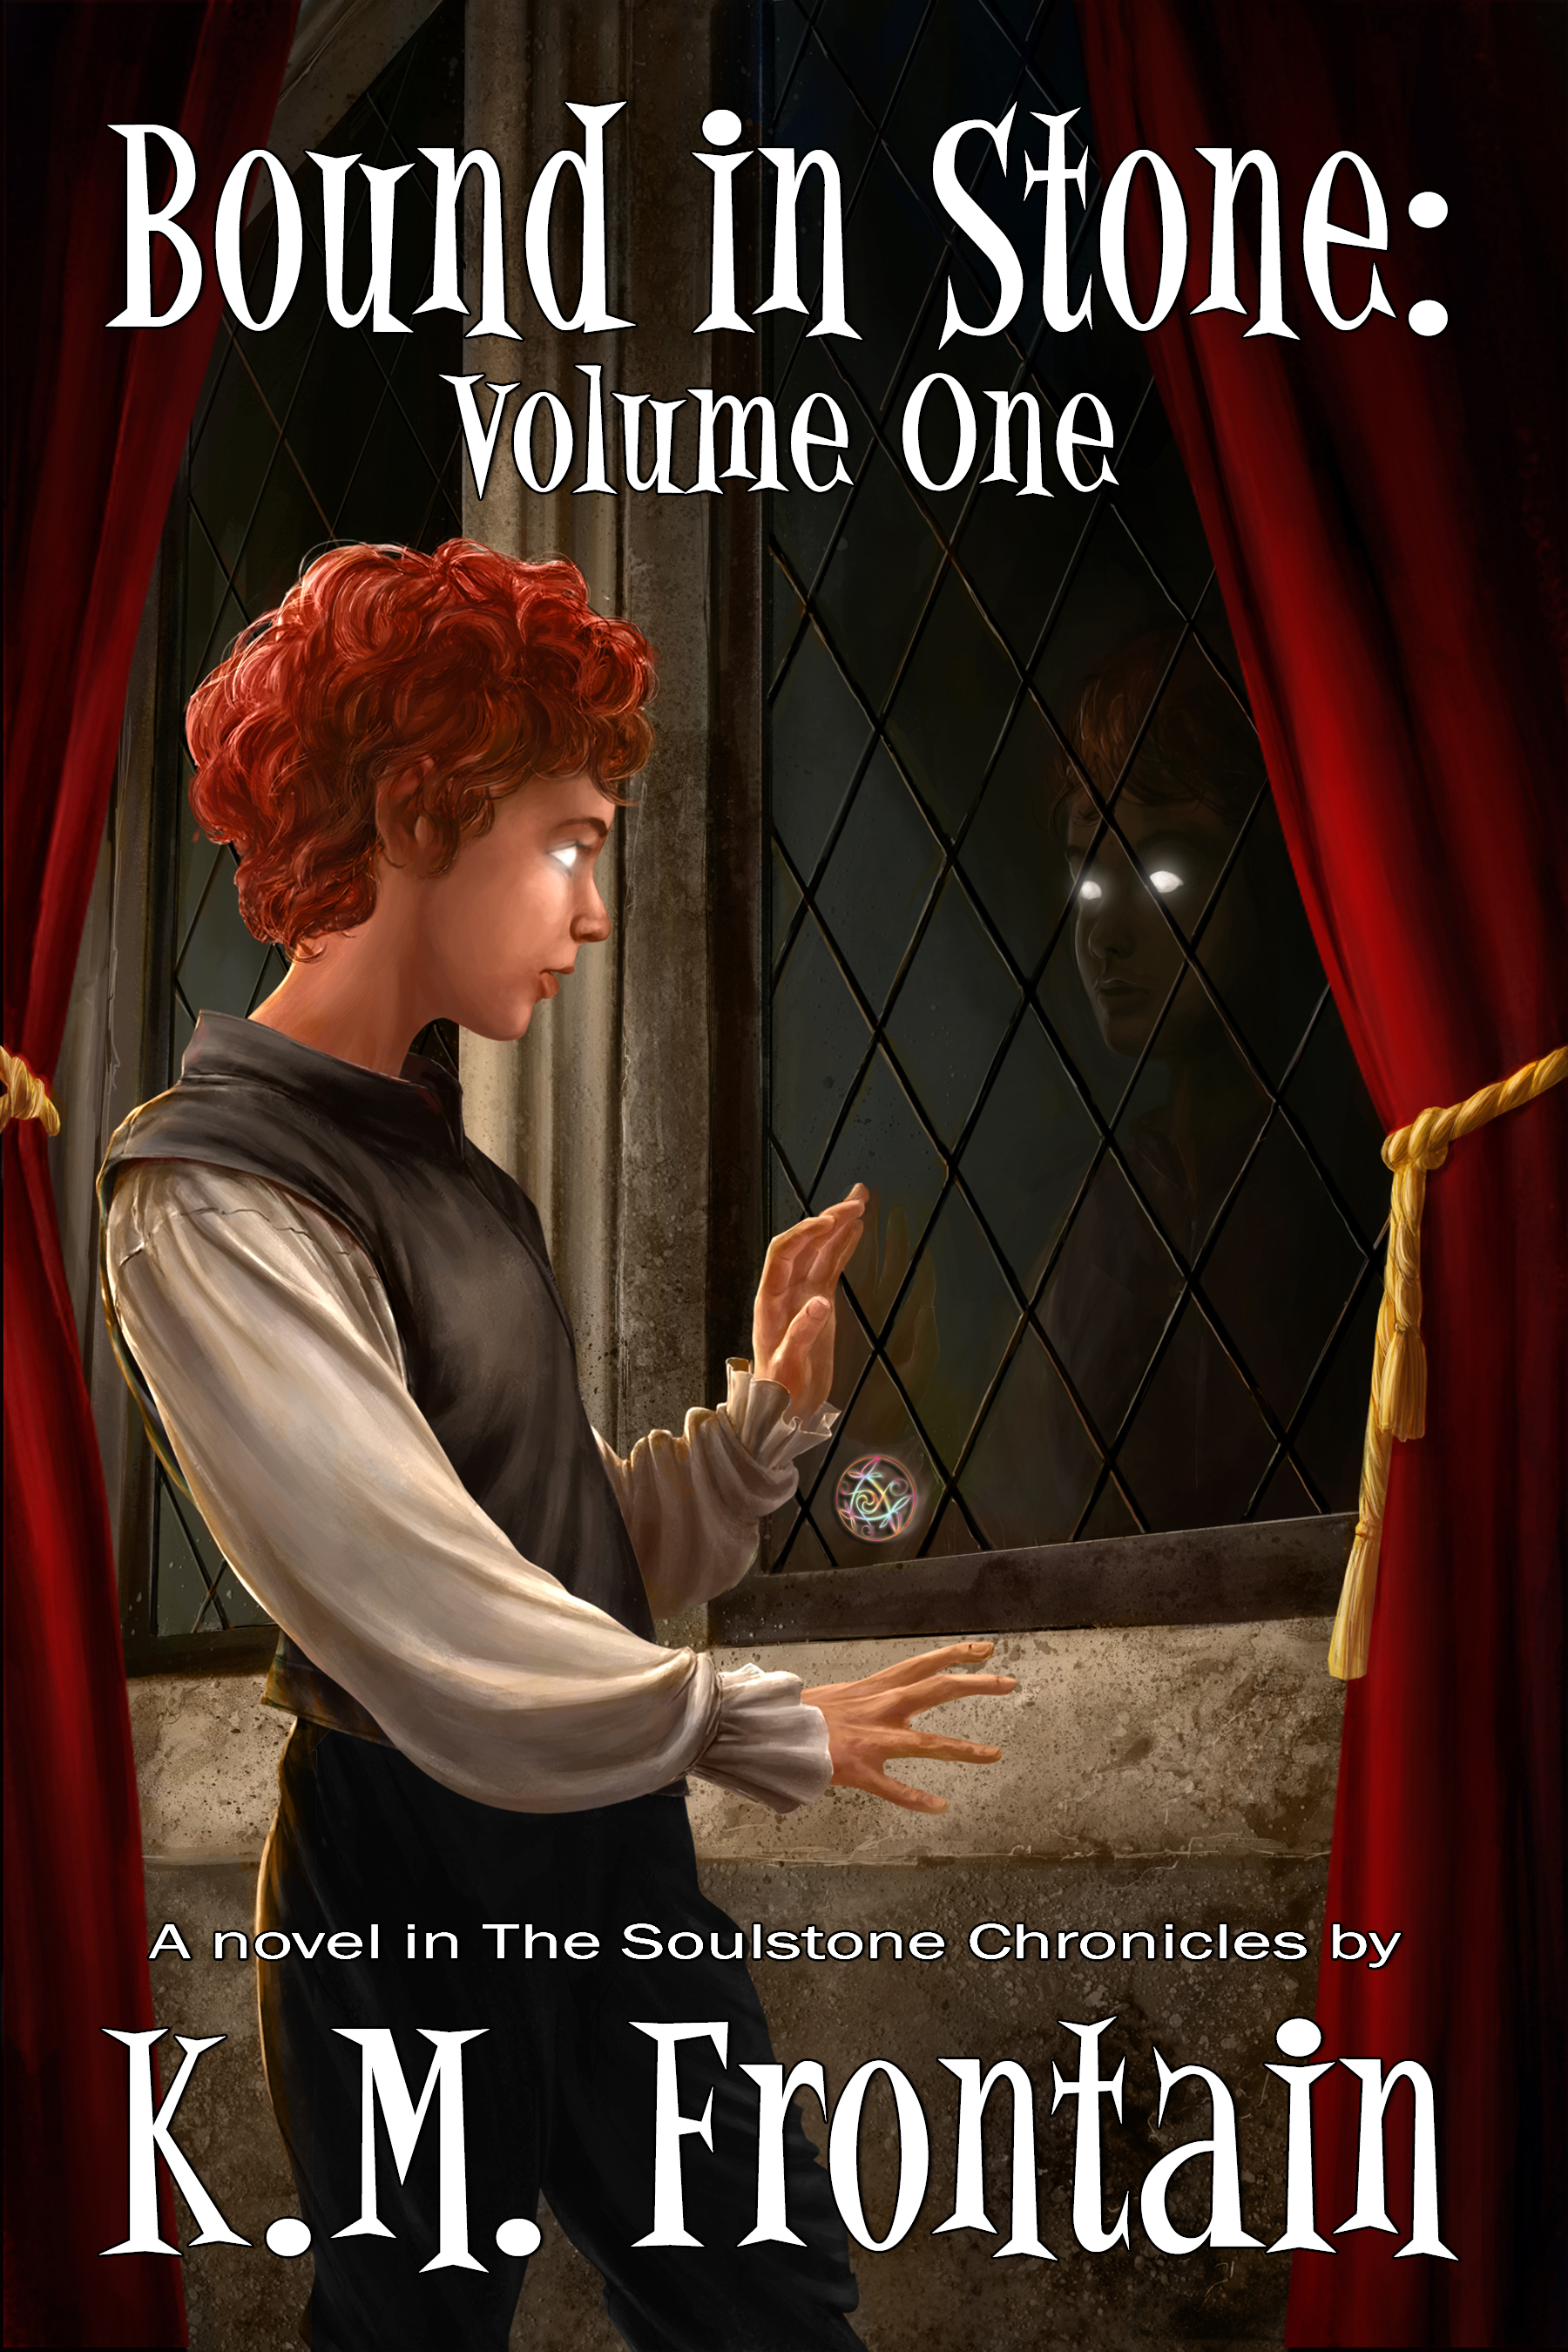 Bound in Stone:  The Soulstone Chronicles Volume One (sst-cxciv)